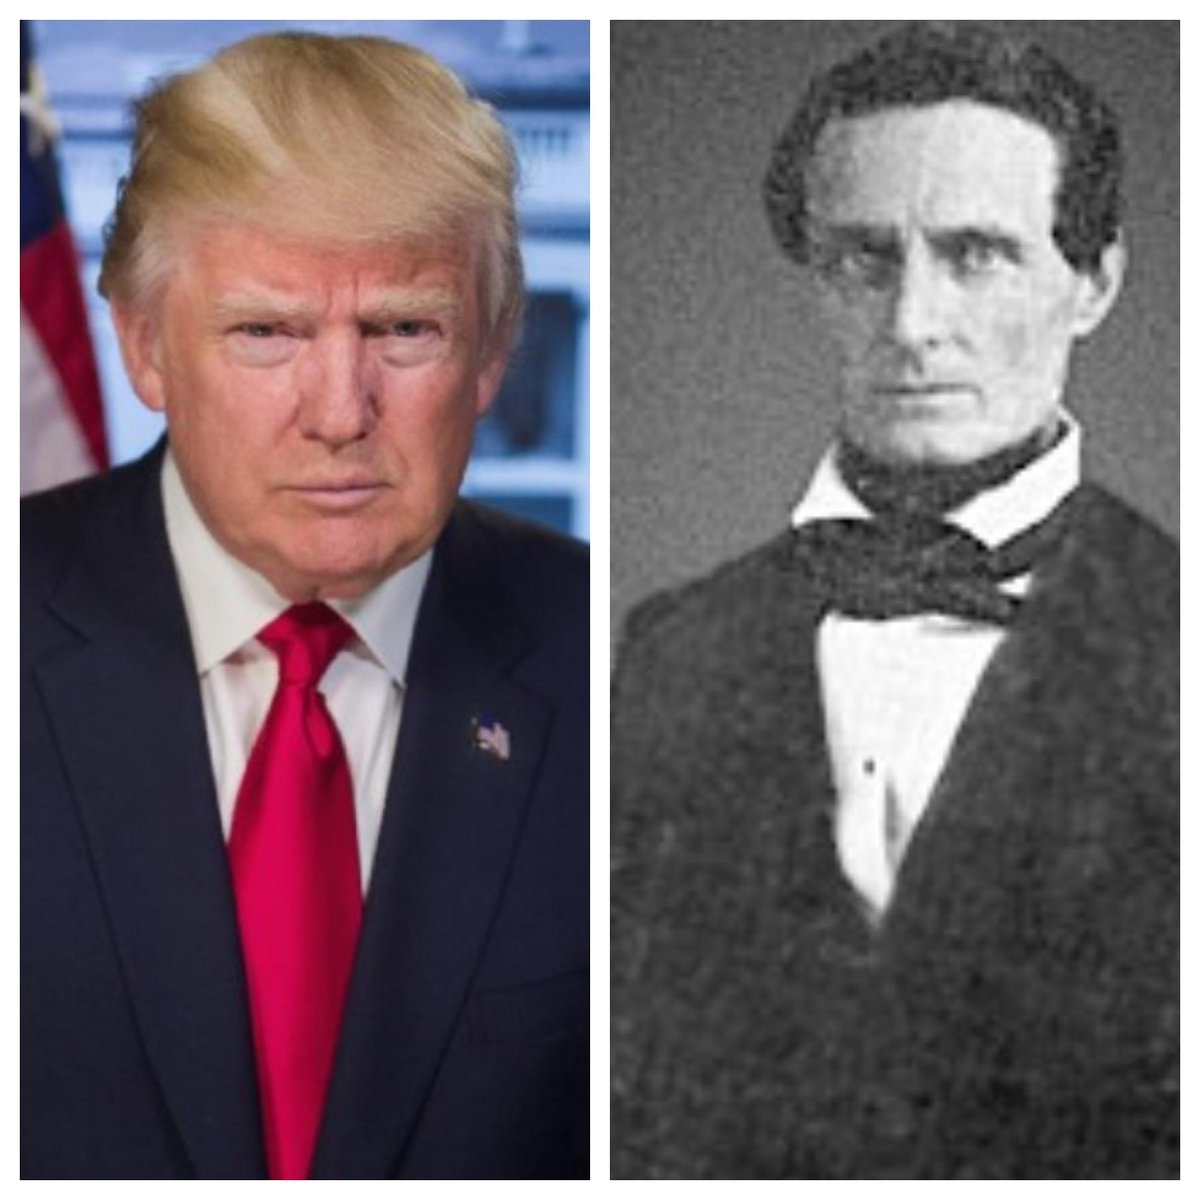 Trump is This Generations Version of The Confederate Party Leader . Jefferson Davis would be Proud. @ShannonSharpe  @jemelehill  @TheRevAl @maddow https://t.co/M8qtmqZ6sR